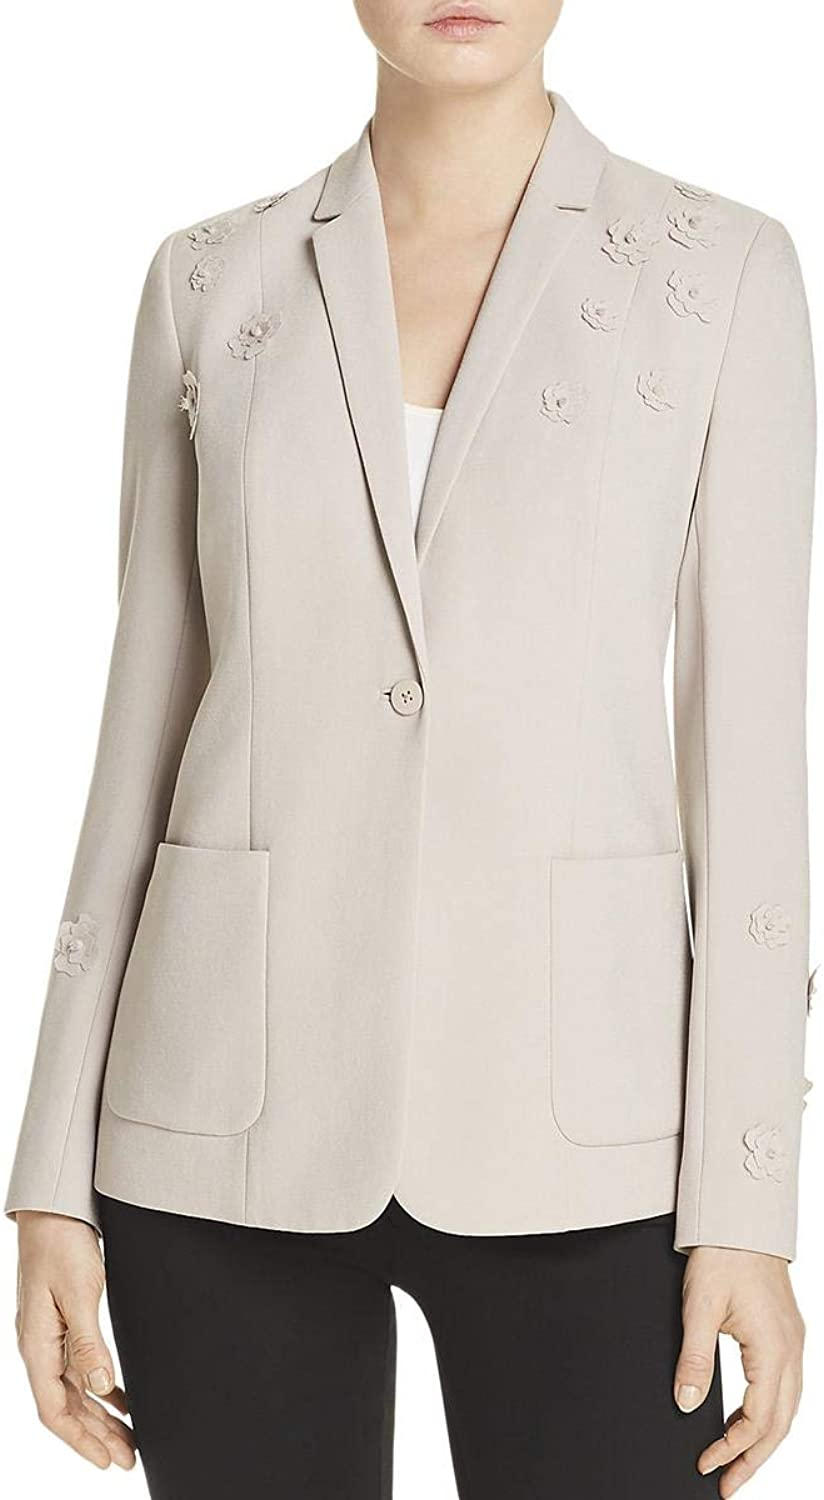 Elie Tahari Womens Wendy Office Wear Business Attire OneButton Blazer